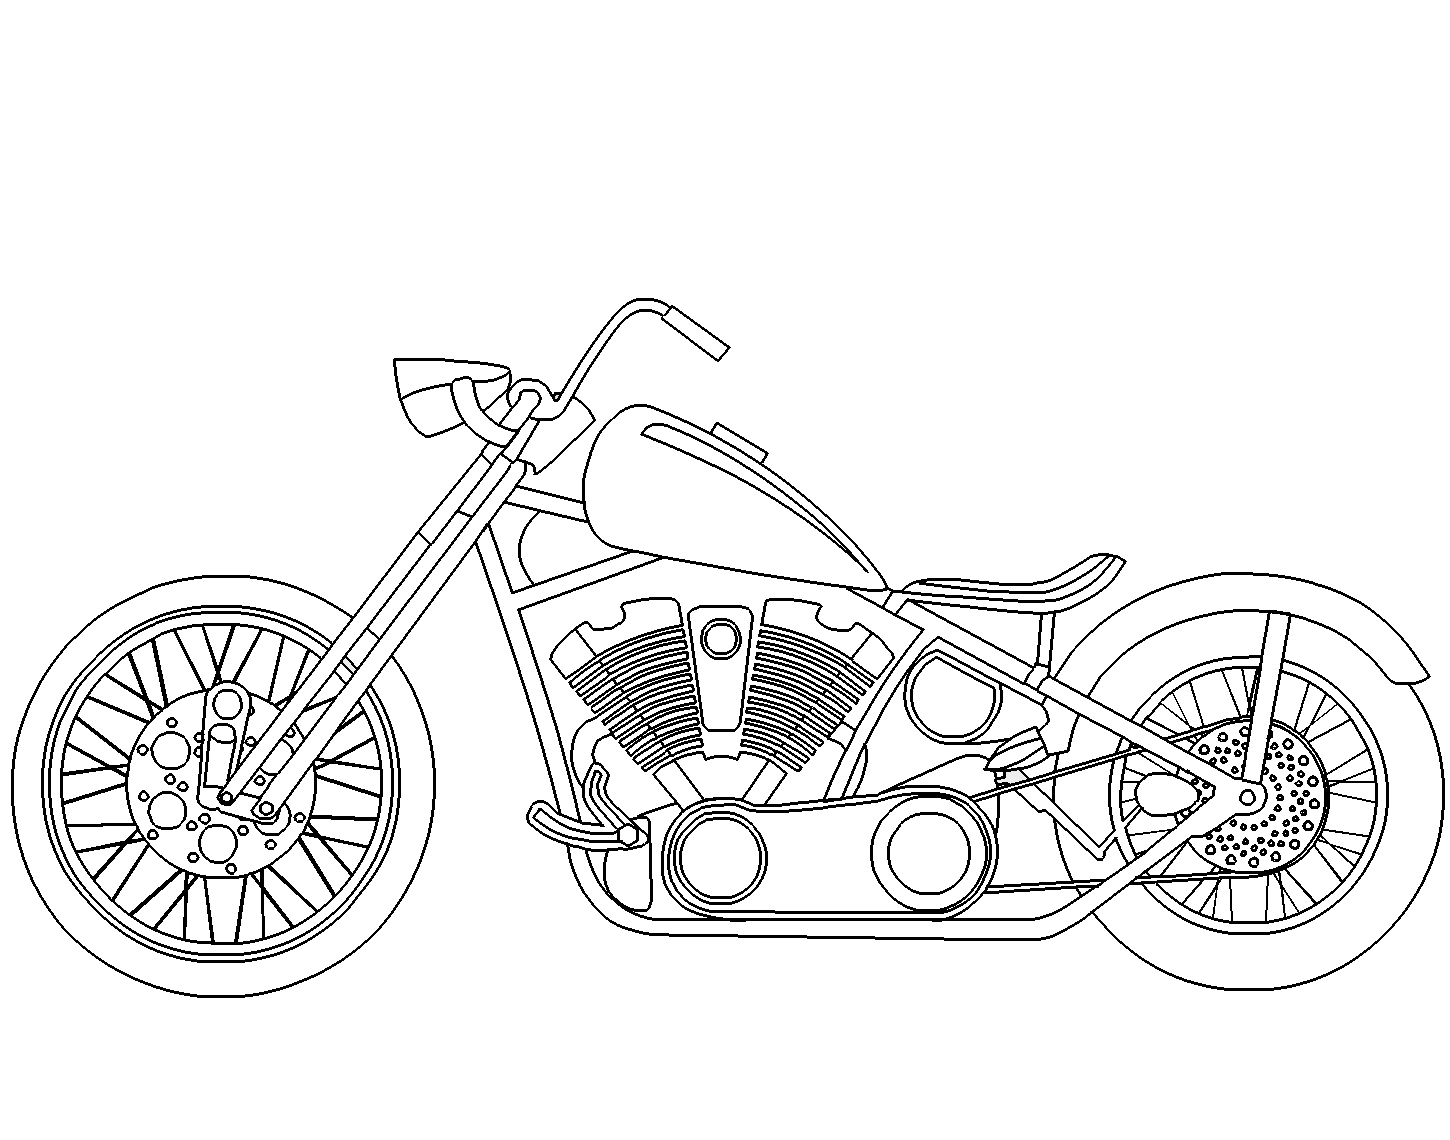 printable motorcycle coloring pages - motorcycle coloring pages coloring pages